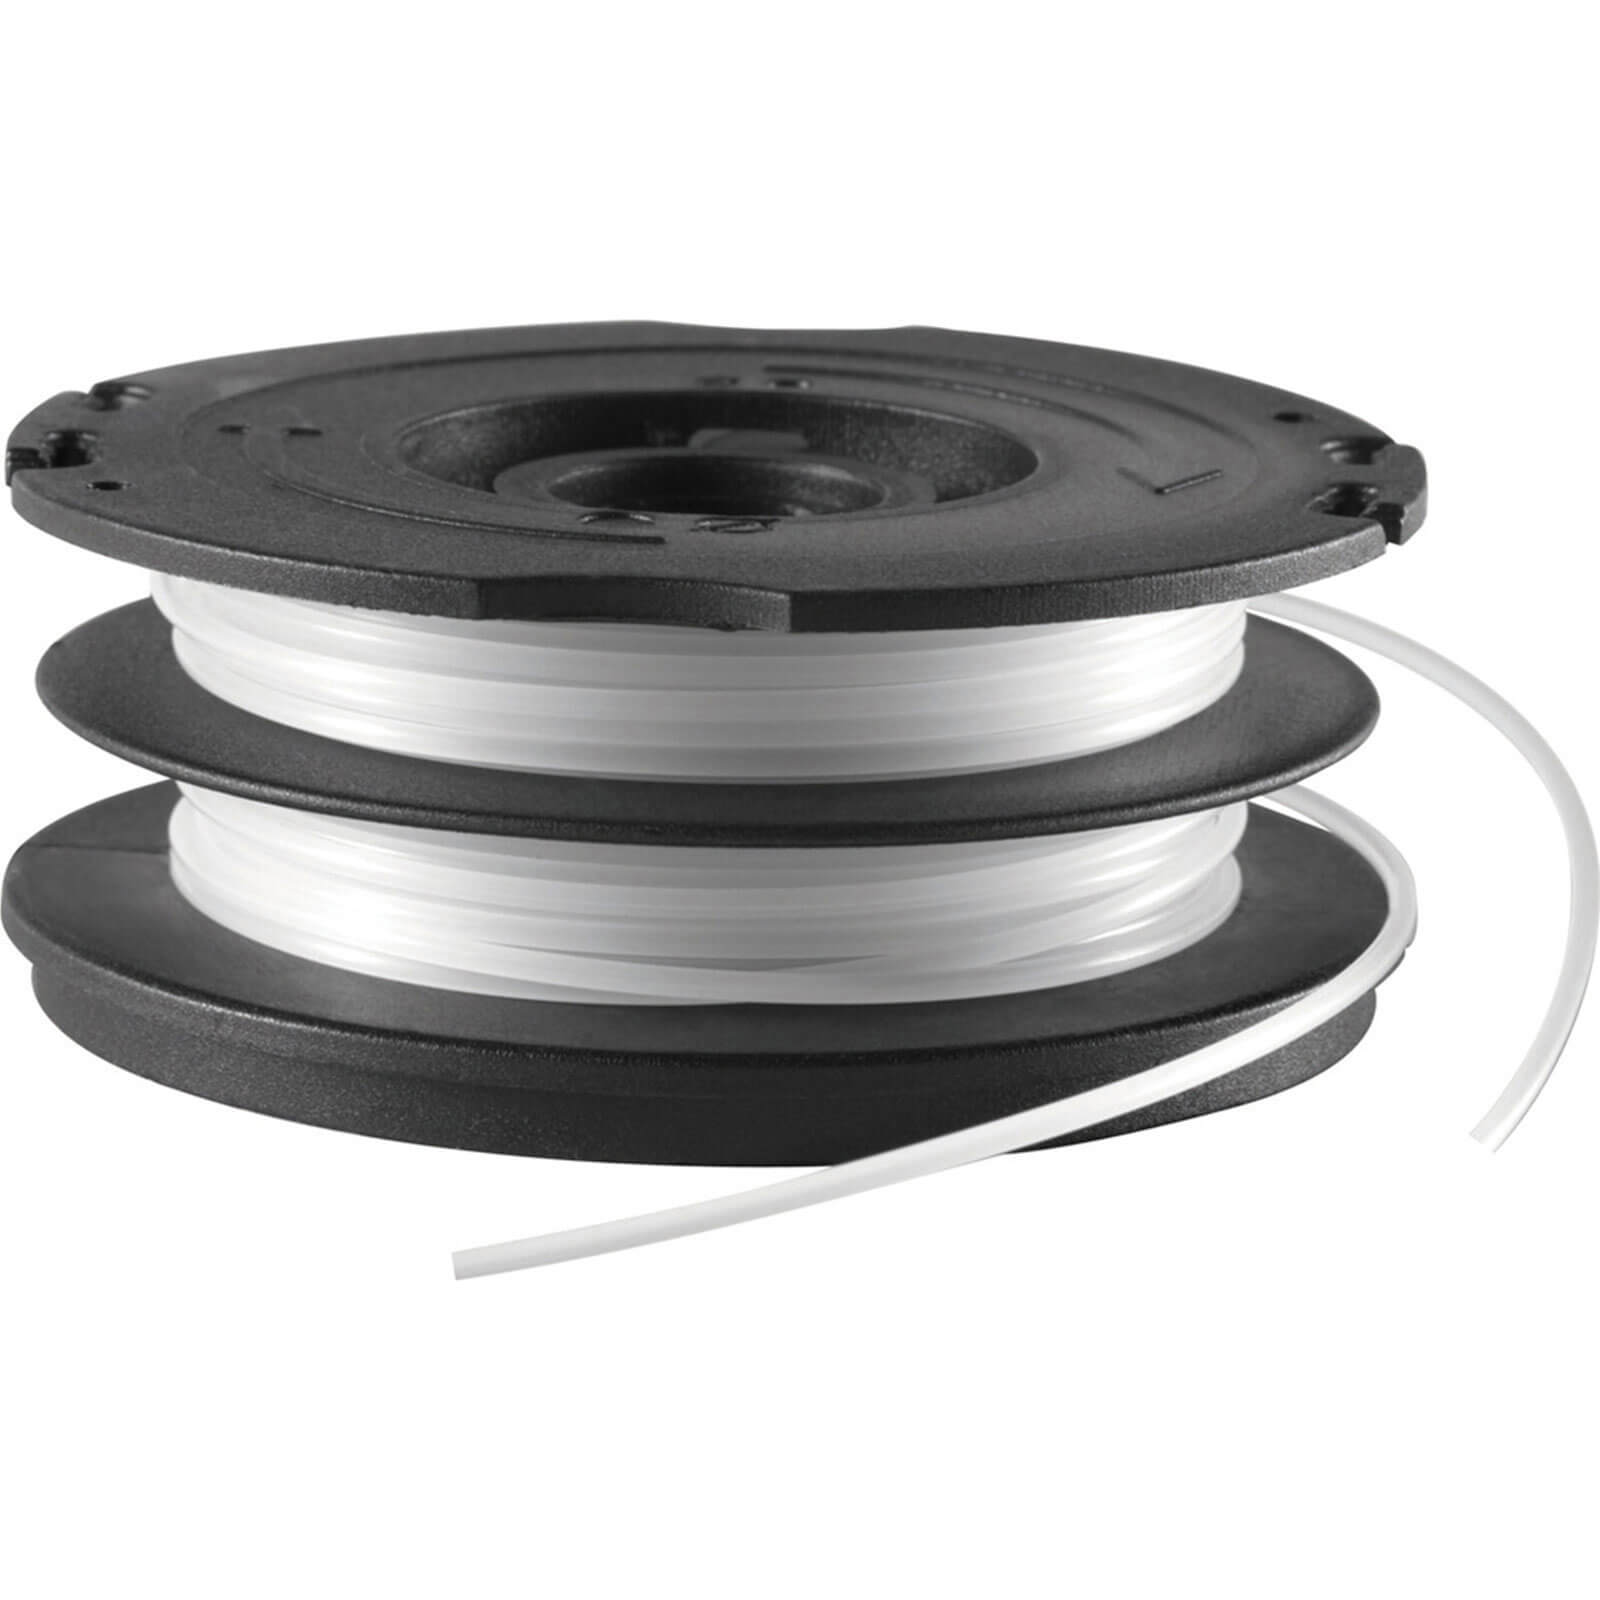 Black & Decker A6495 Spool & Dual 2 x 6 Metre Reflex Line for GL701, GL716, GL720 & GL741 Grass Trimmers